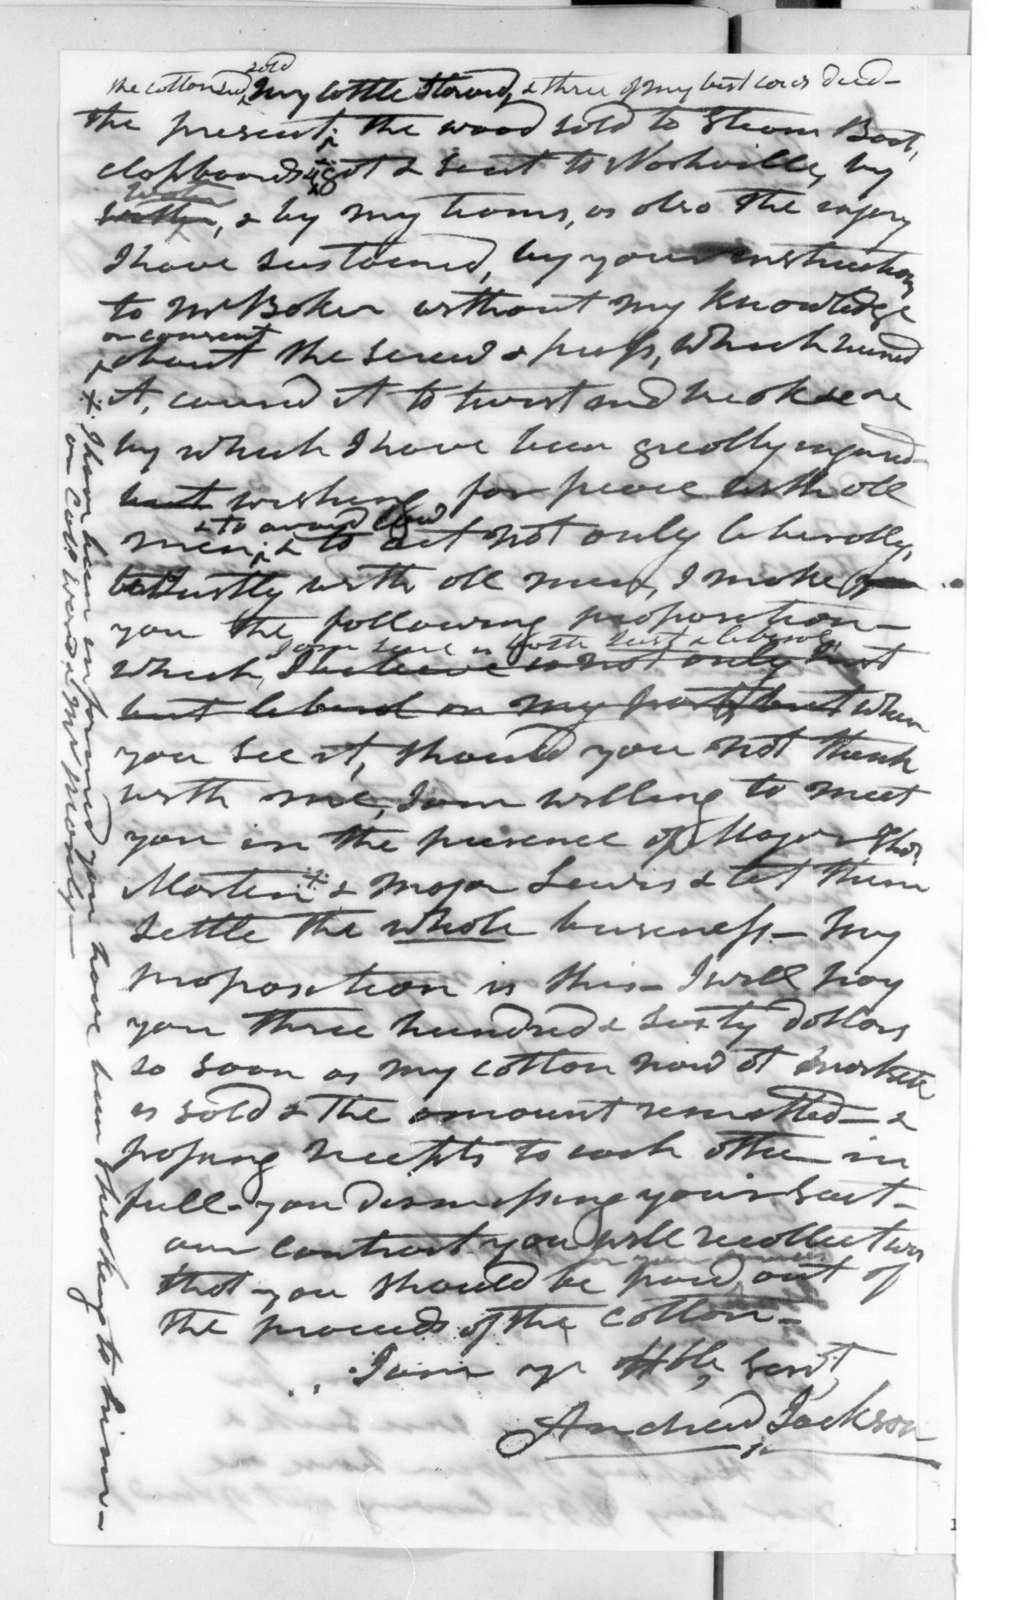 Andrew Jackson to Benjamin P. Person, May 13, 1825